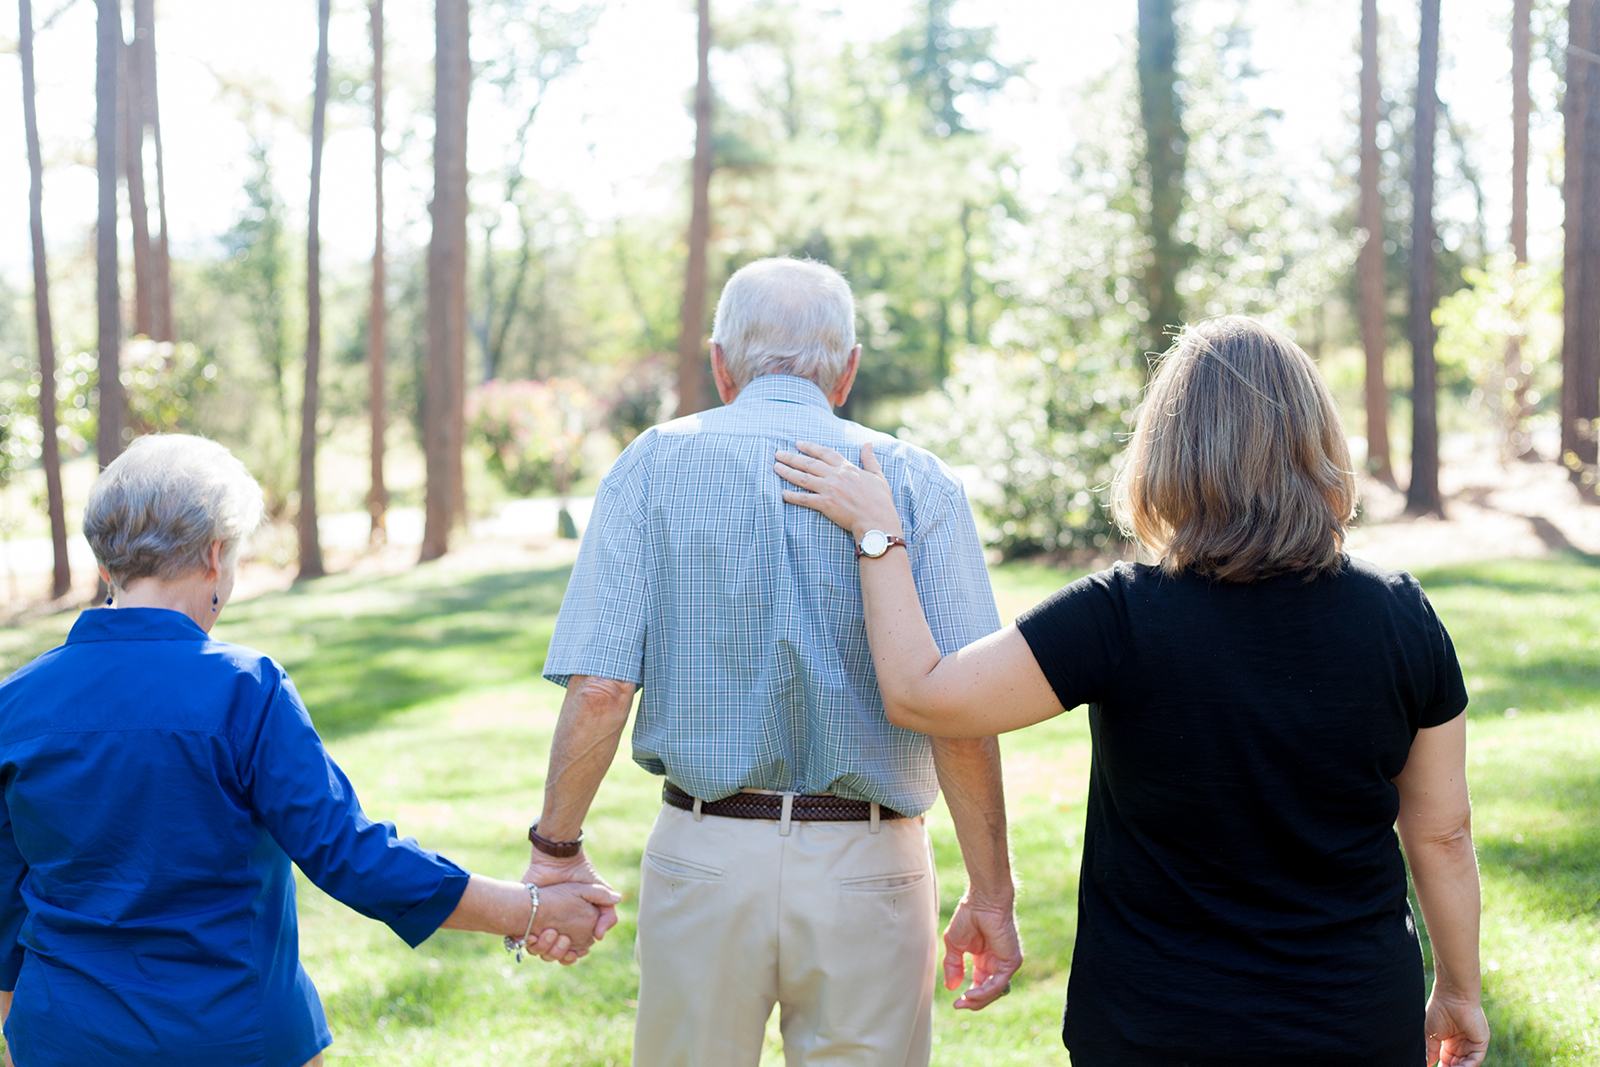 A home caregiver walks toward some trees with an elderly couple.